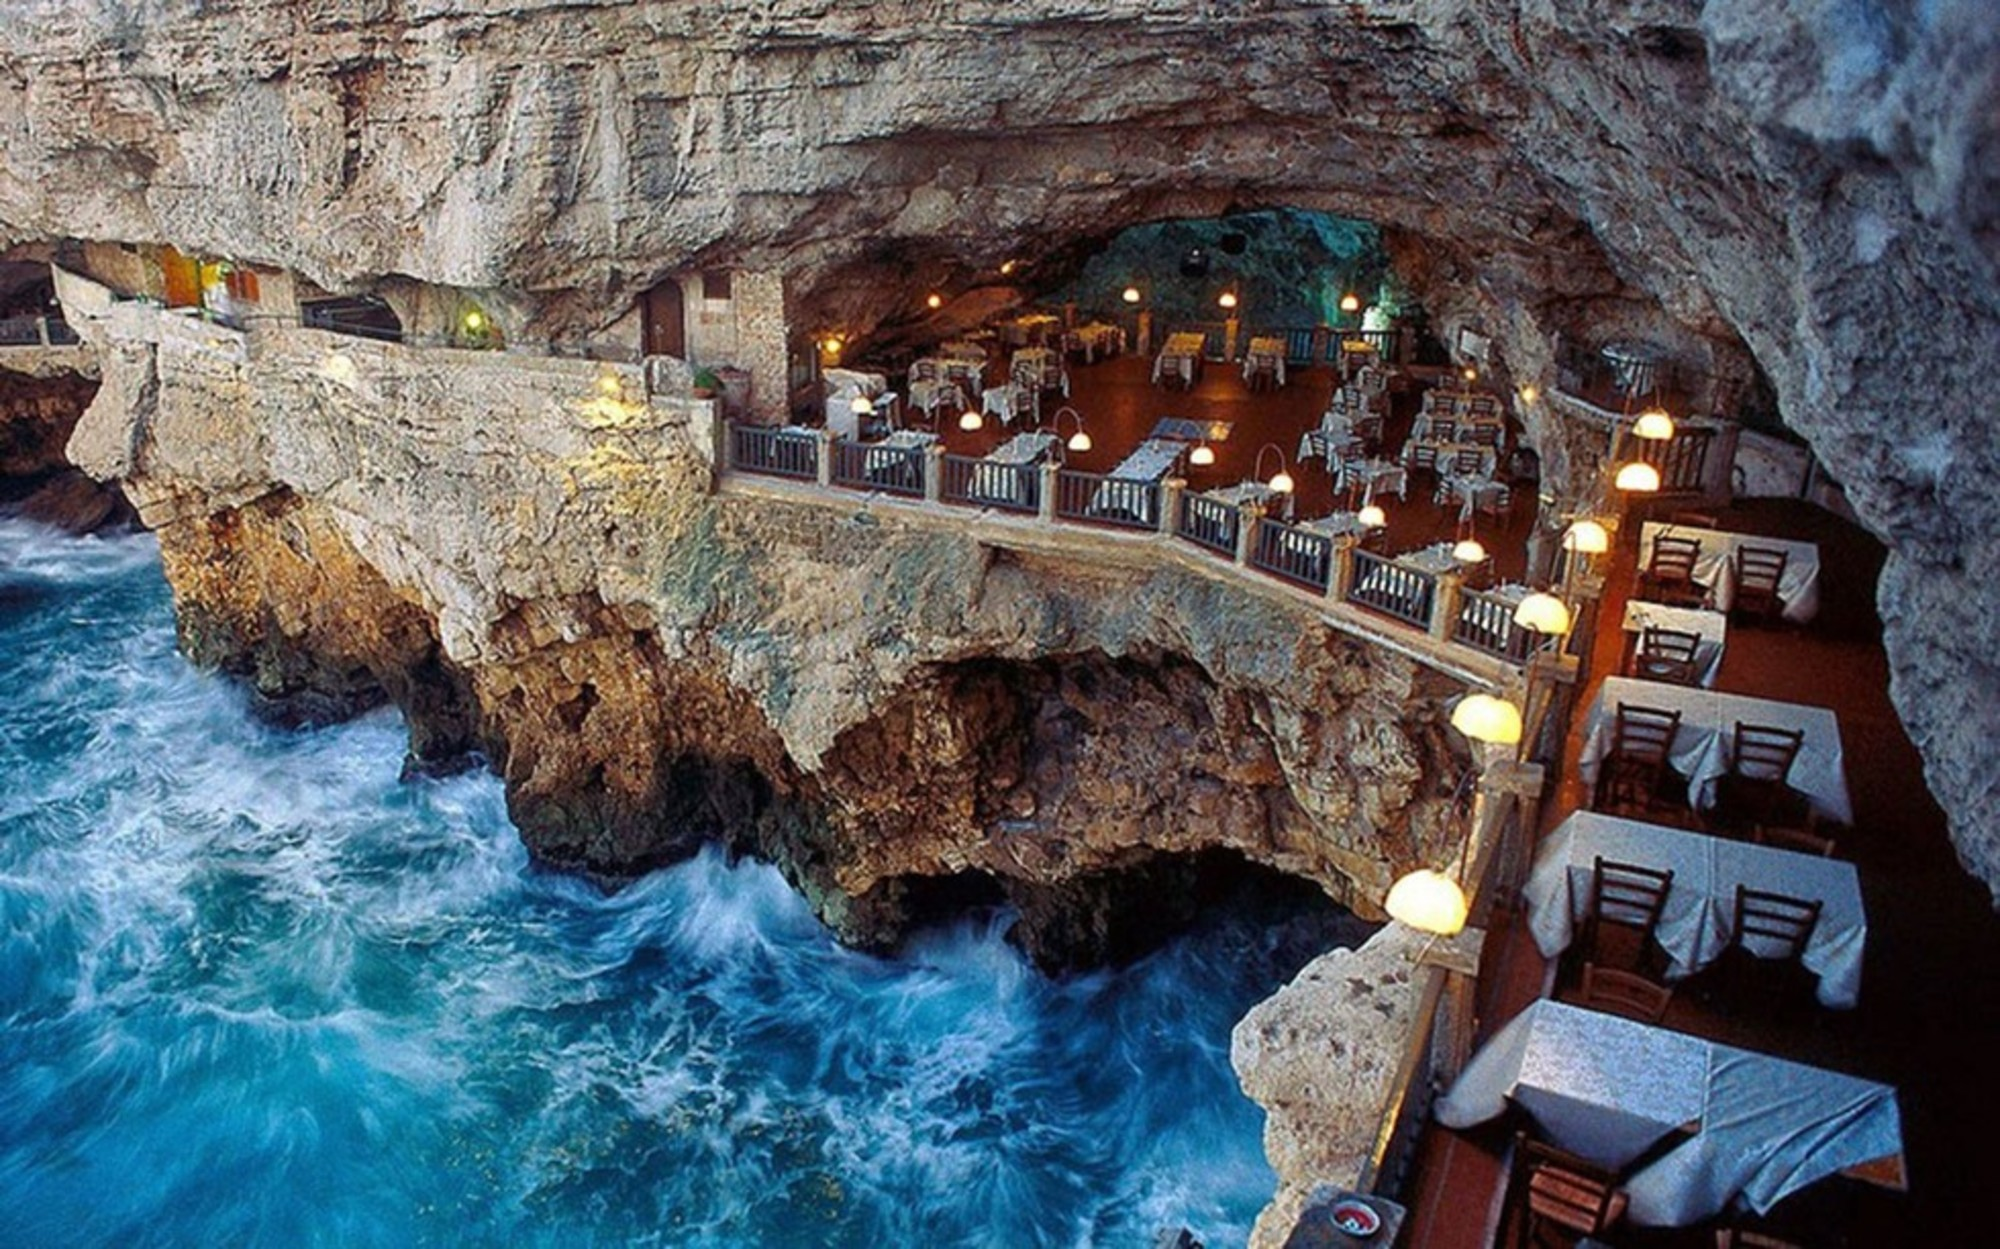 Luxury restaurants: an unforgettable experience inside a cave upholstered furniture Upholstered Furniture To Make Any Room More Comfortable Luxury restaurants an unforgettable experience inside a cave upholstered furniture Upholstered Furniture To Make Any Room More Comfortable Luxury restaurants an unforgettable experience inside a cave